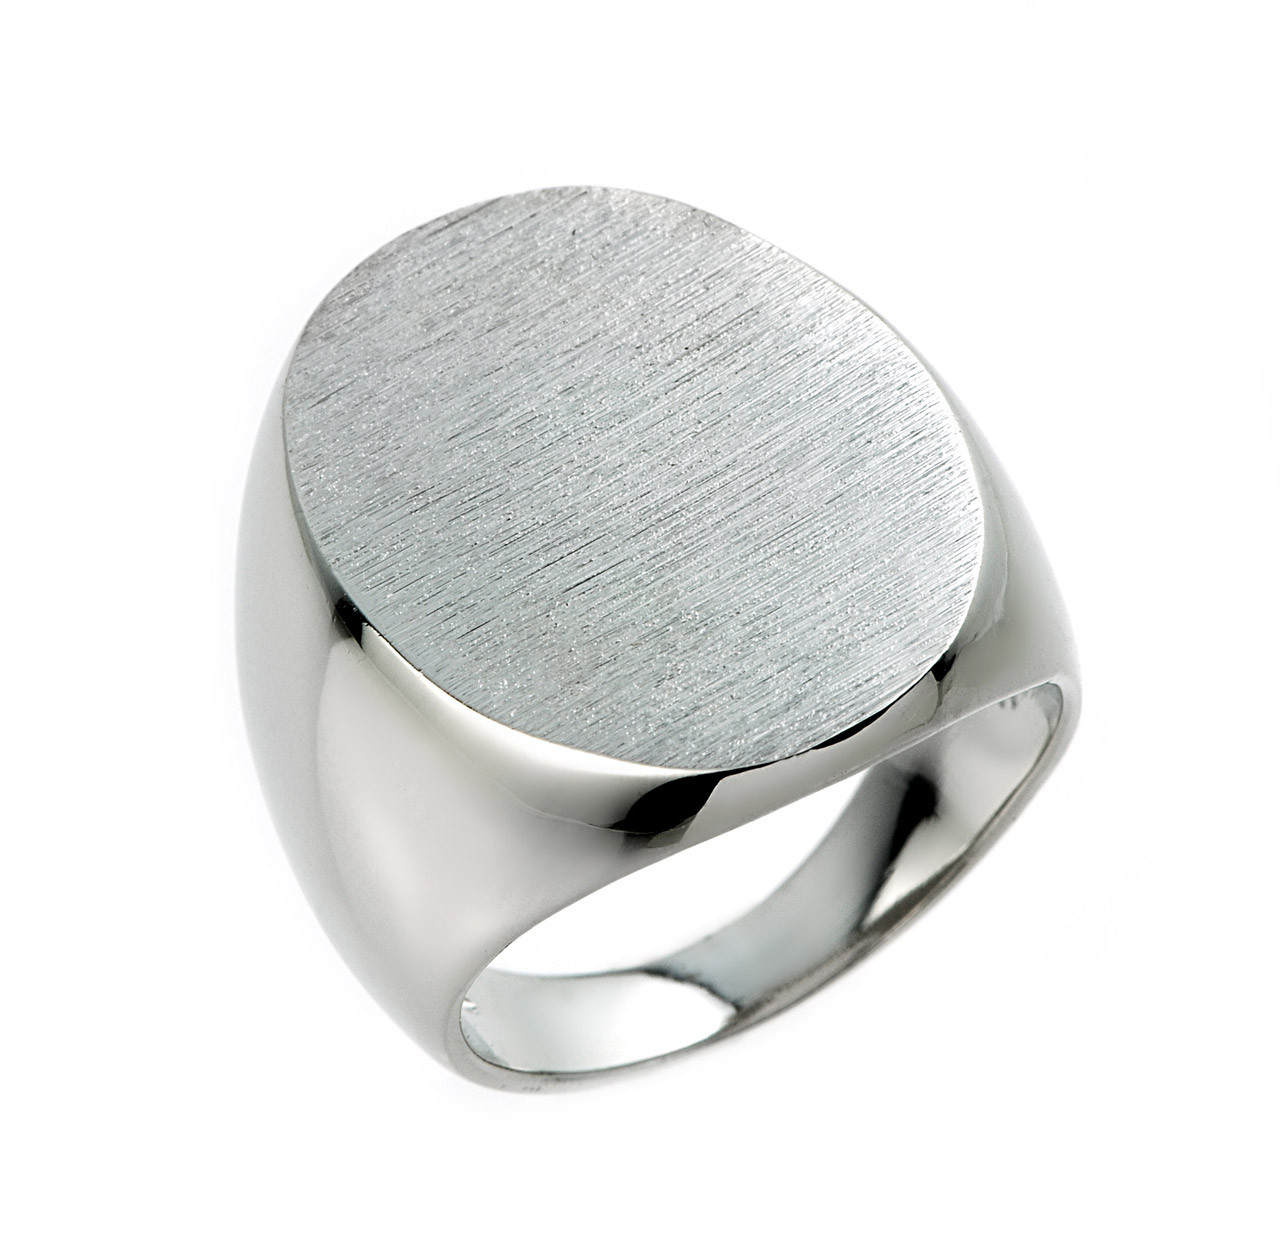 8f6ddf6a821 Men's Large Oval Signet Ring in Sterling Silver